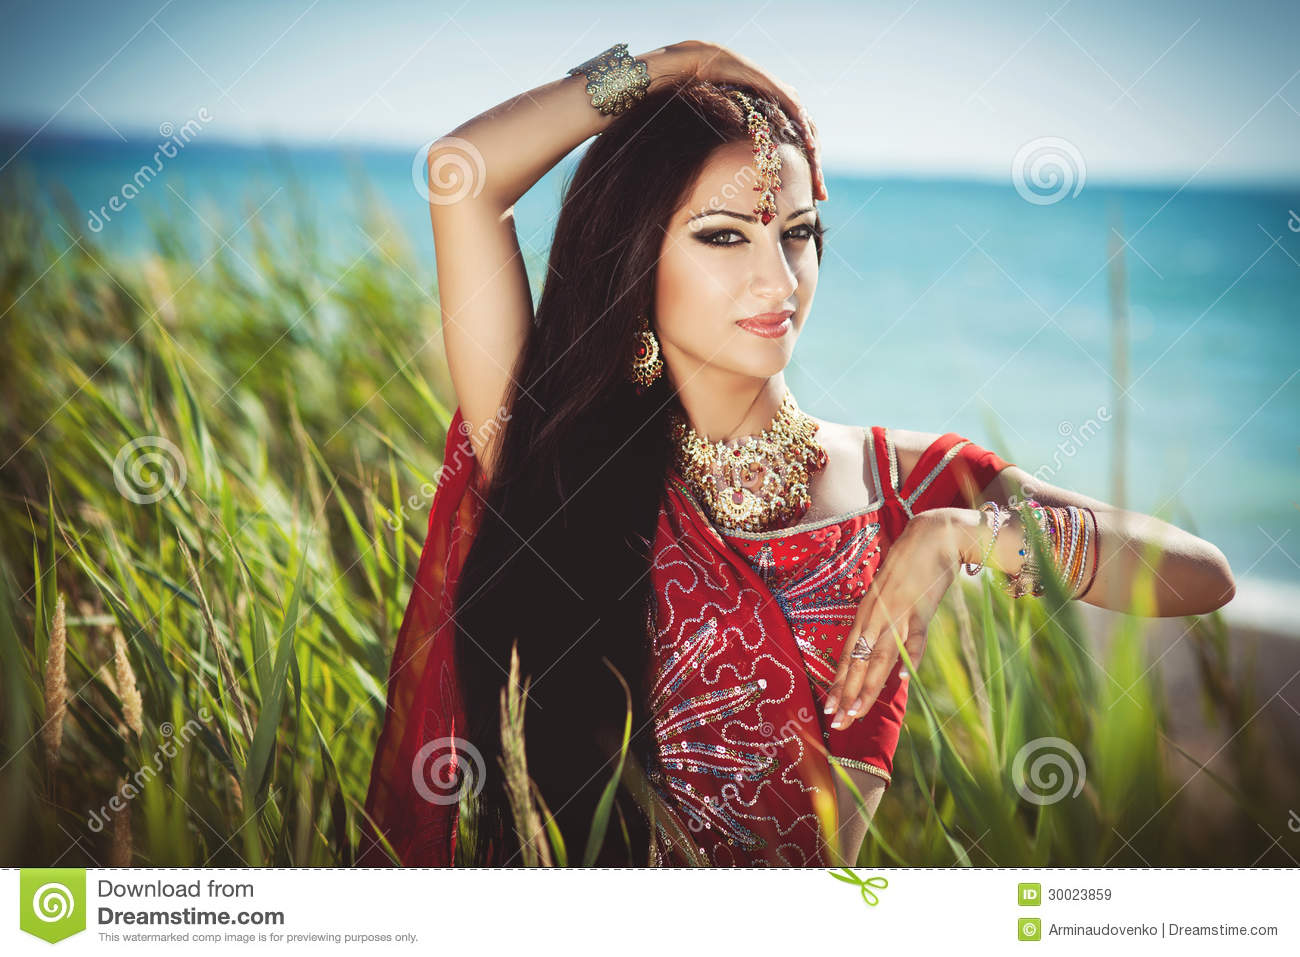 Beautiful young indian woman in traditional clothing with bridal makeup and jewelry. gorgeous brunette bride traditionally dressed Outdoors in India.